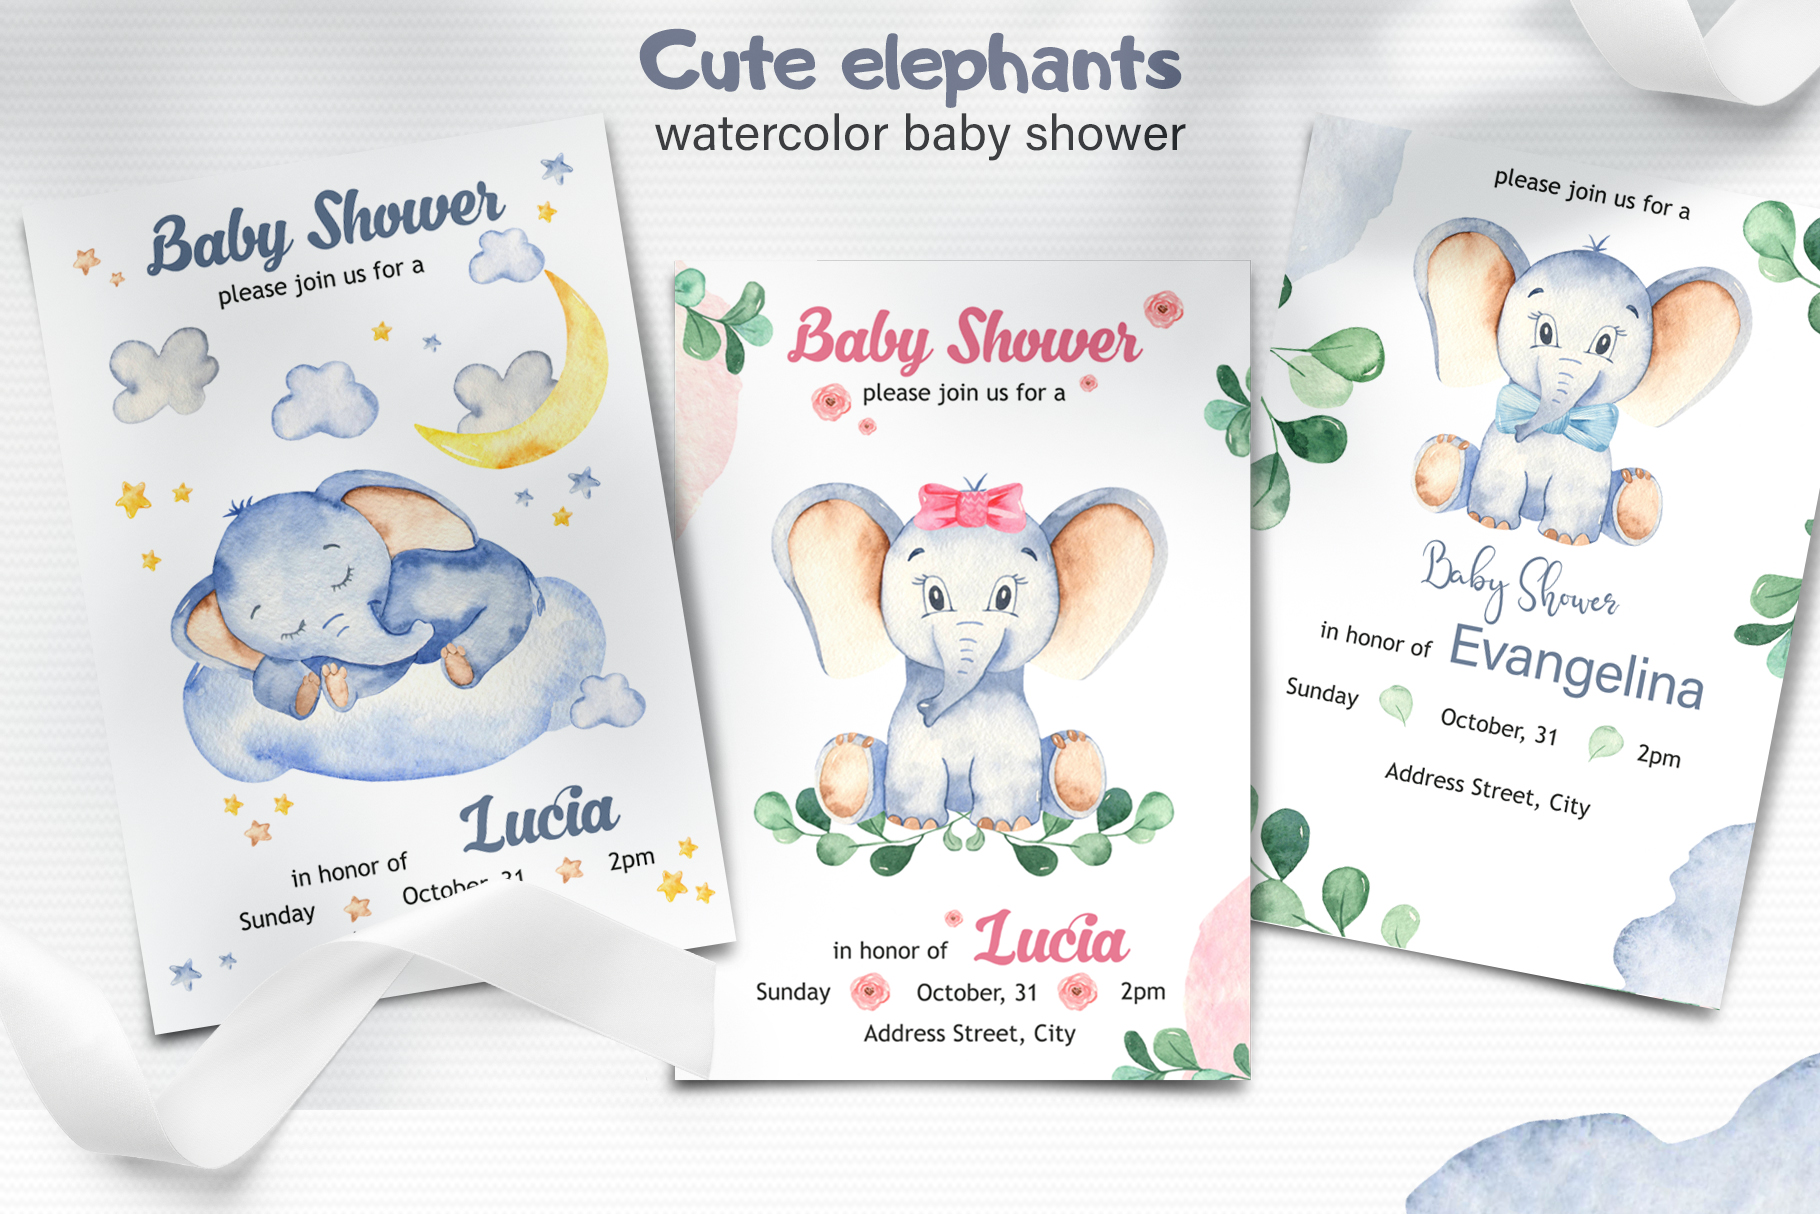 Cute elephants watercolor collection clipart example image 2